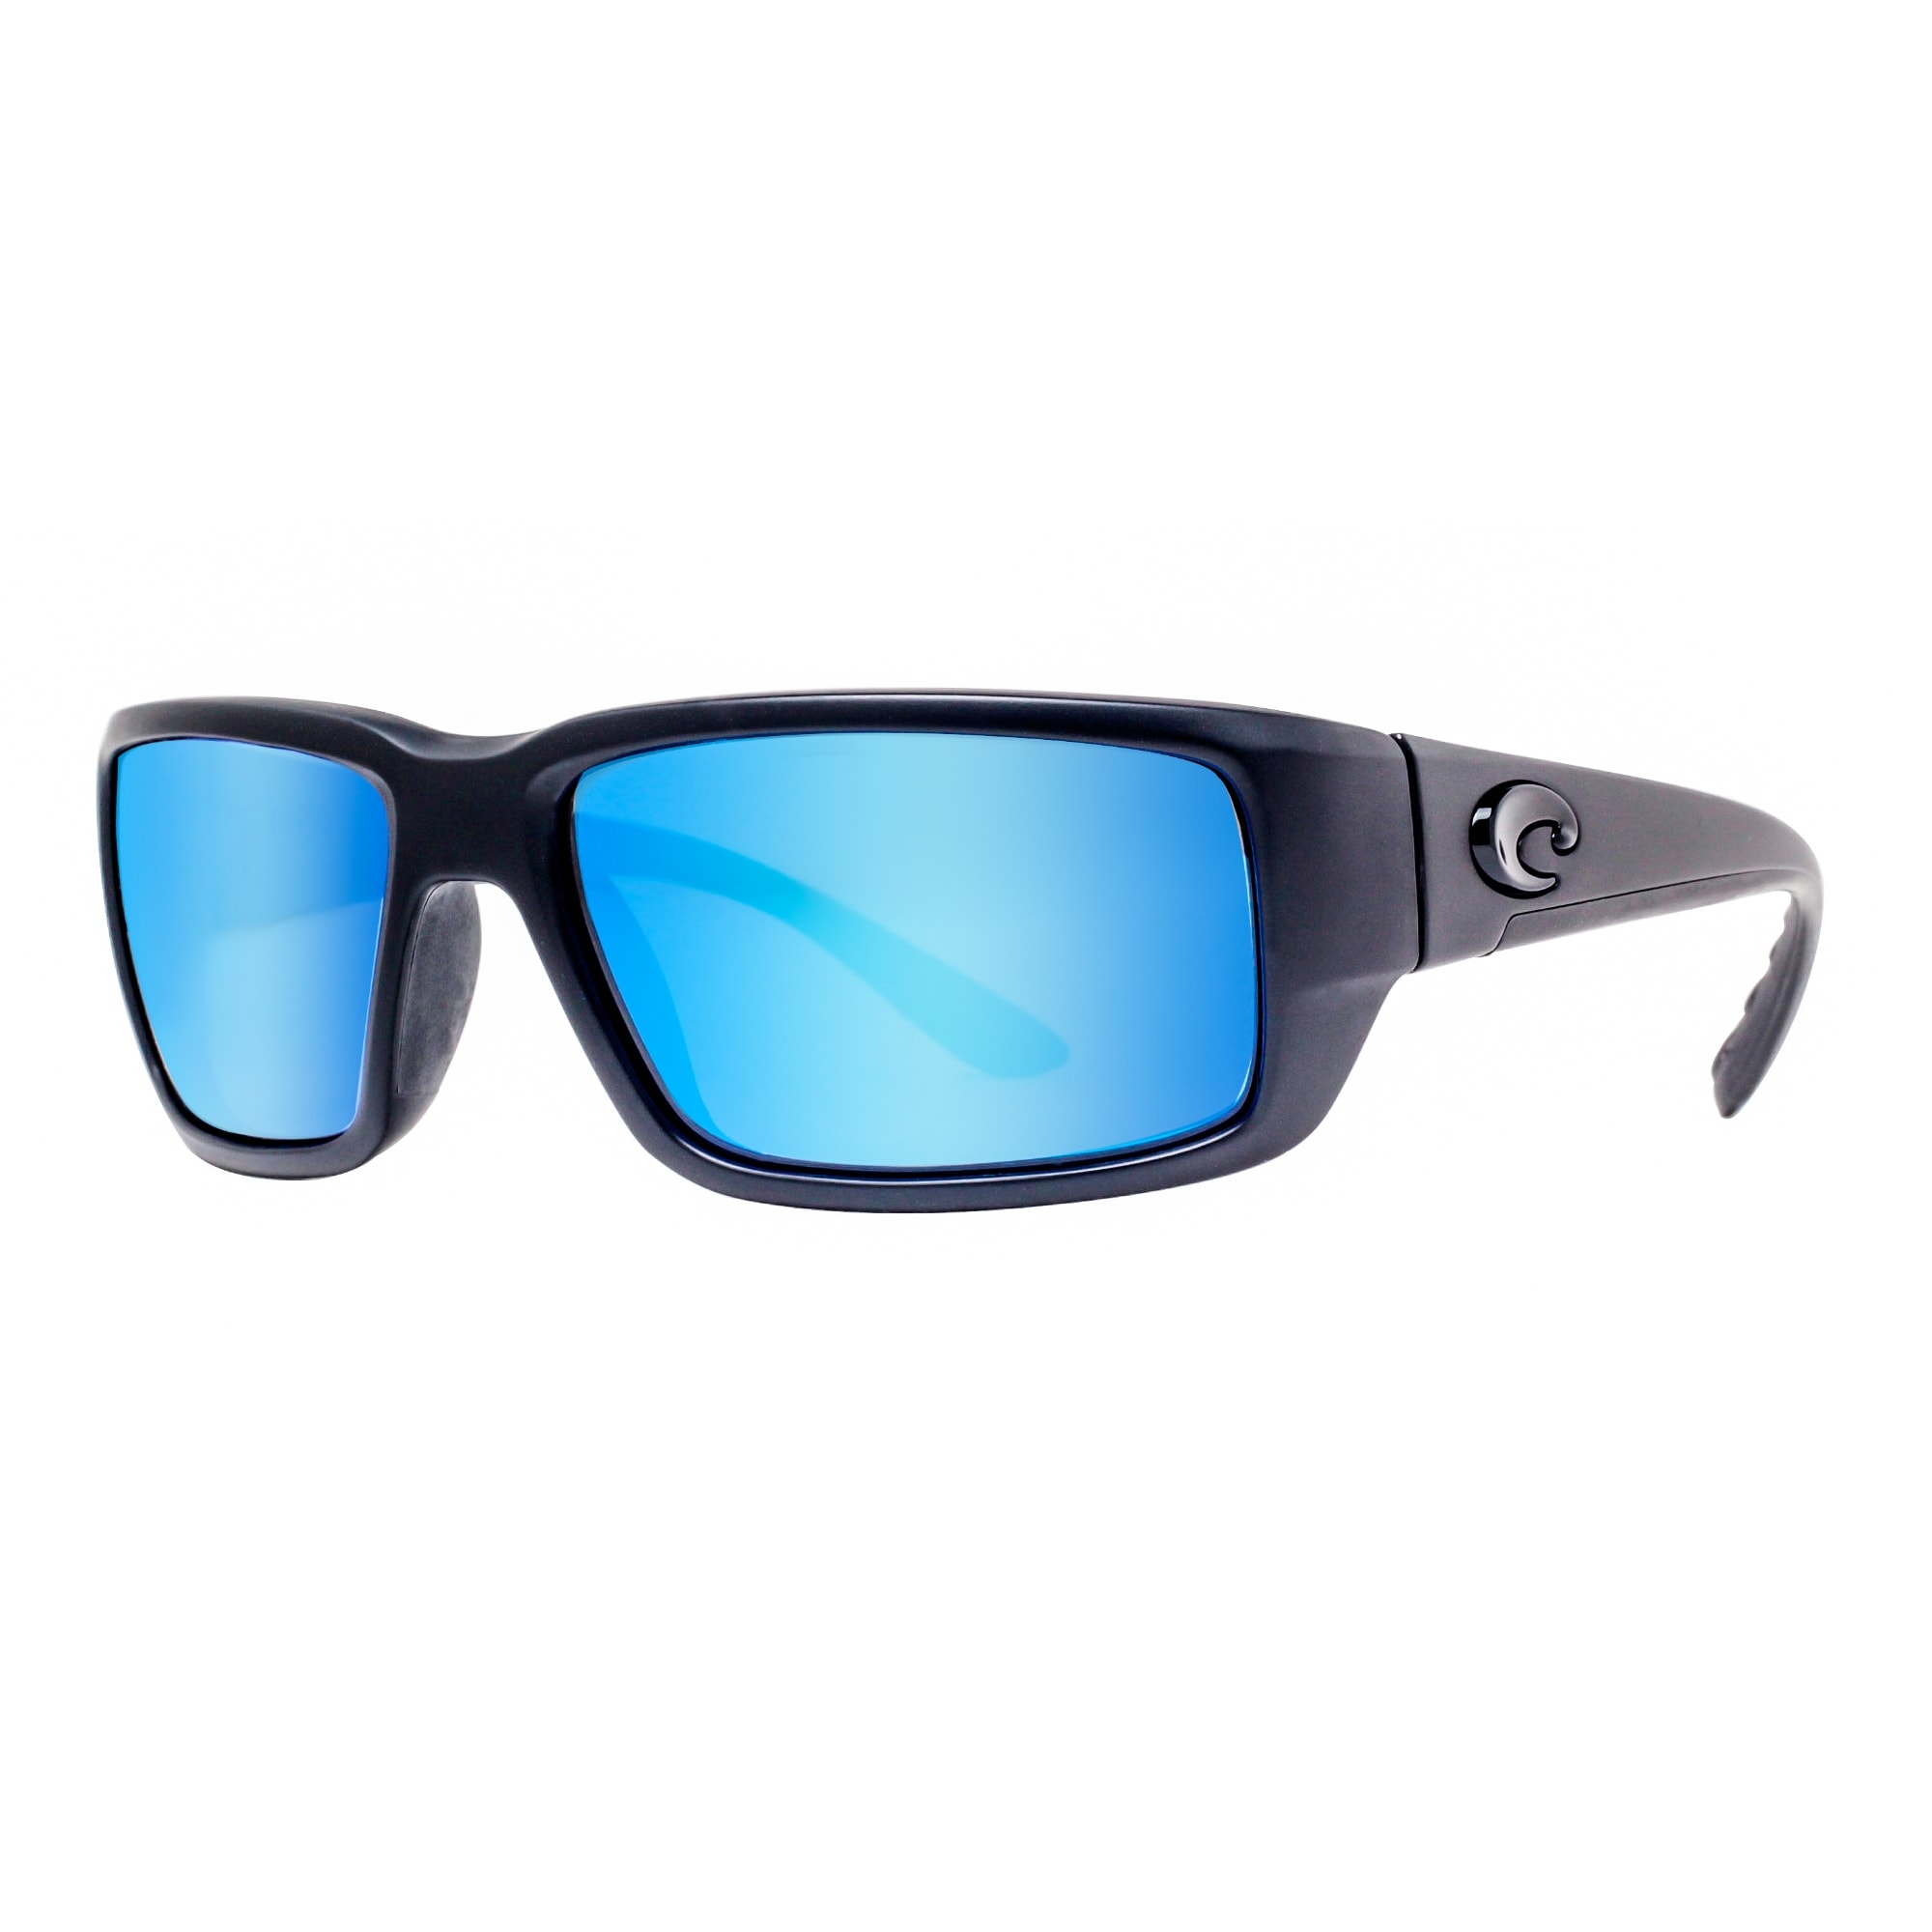 fb859a0349bea Costa Del Mar Fantail TF01BMGLP Matte Black out 400G Blue Mirror Pol  Sunglasses - matte blackout - 59mm-18mm-120mm